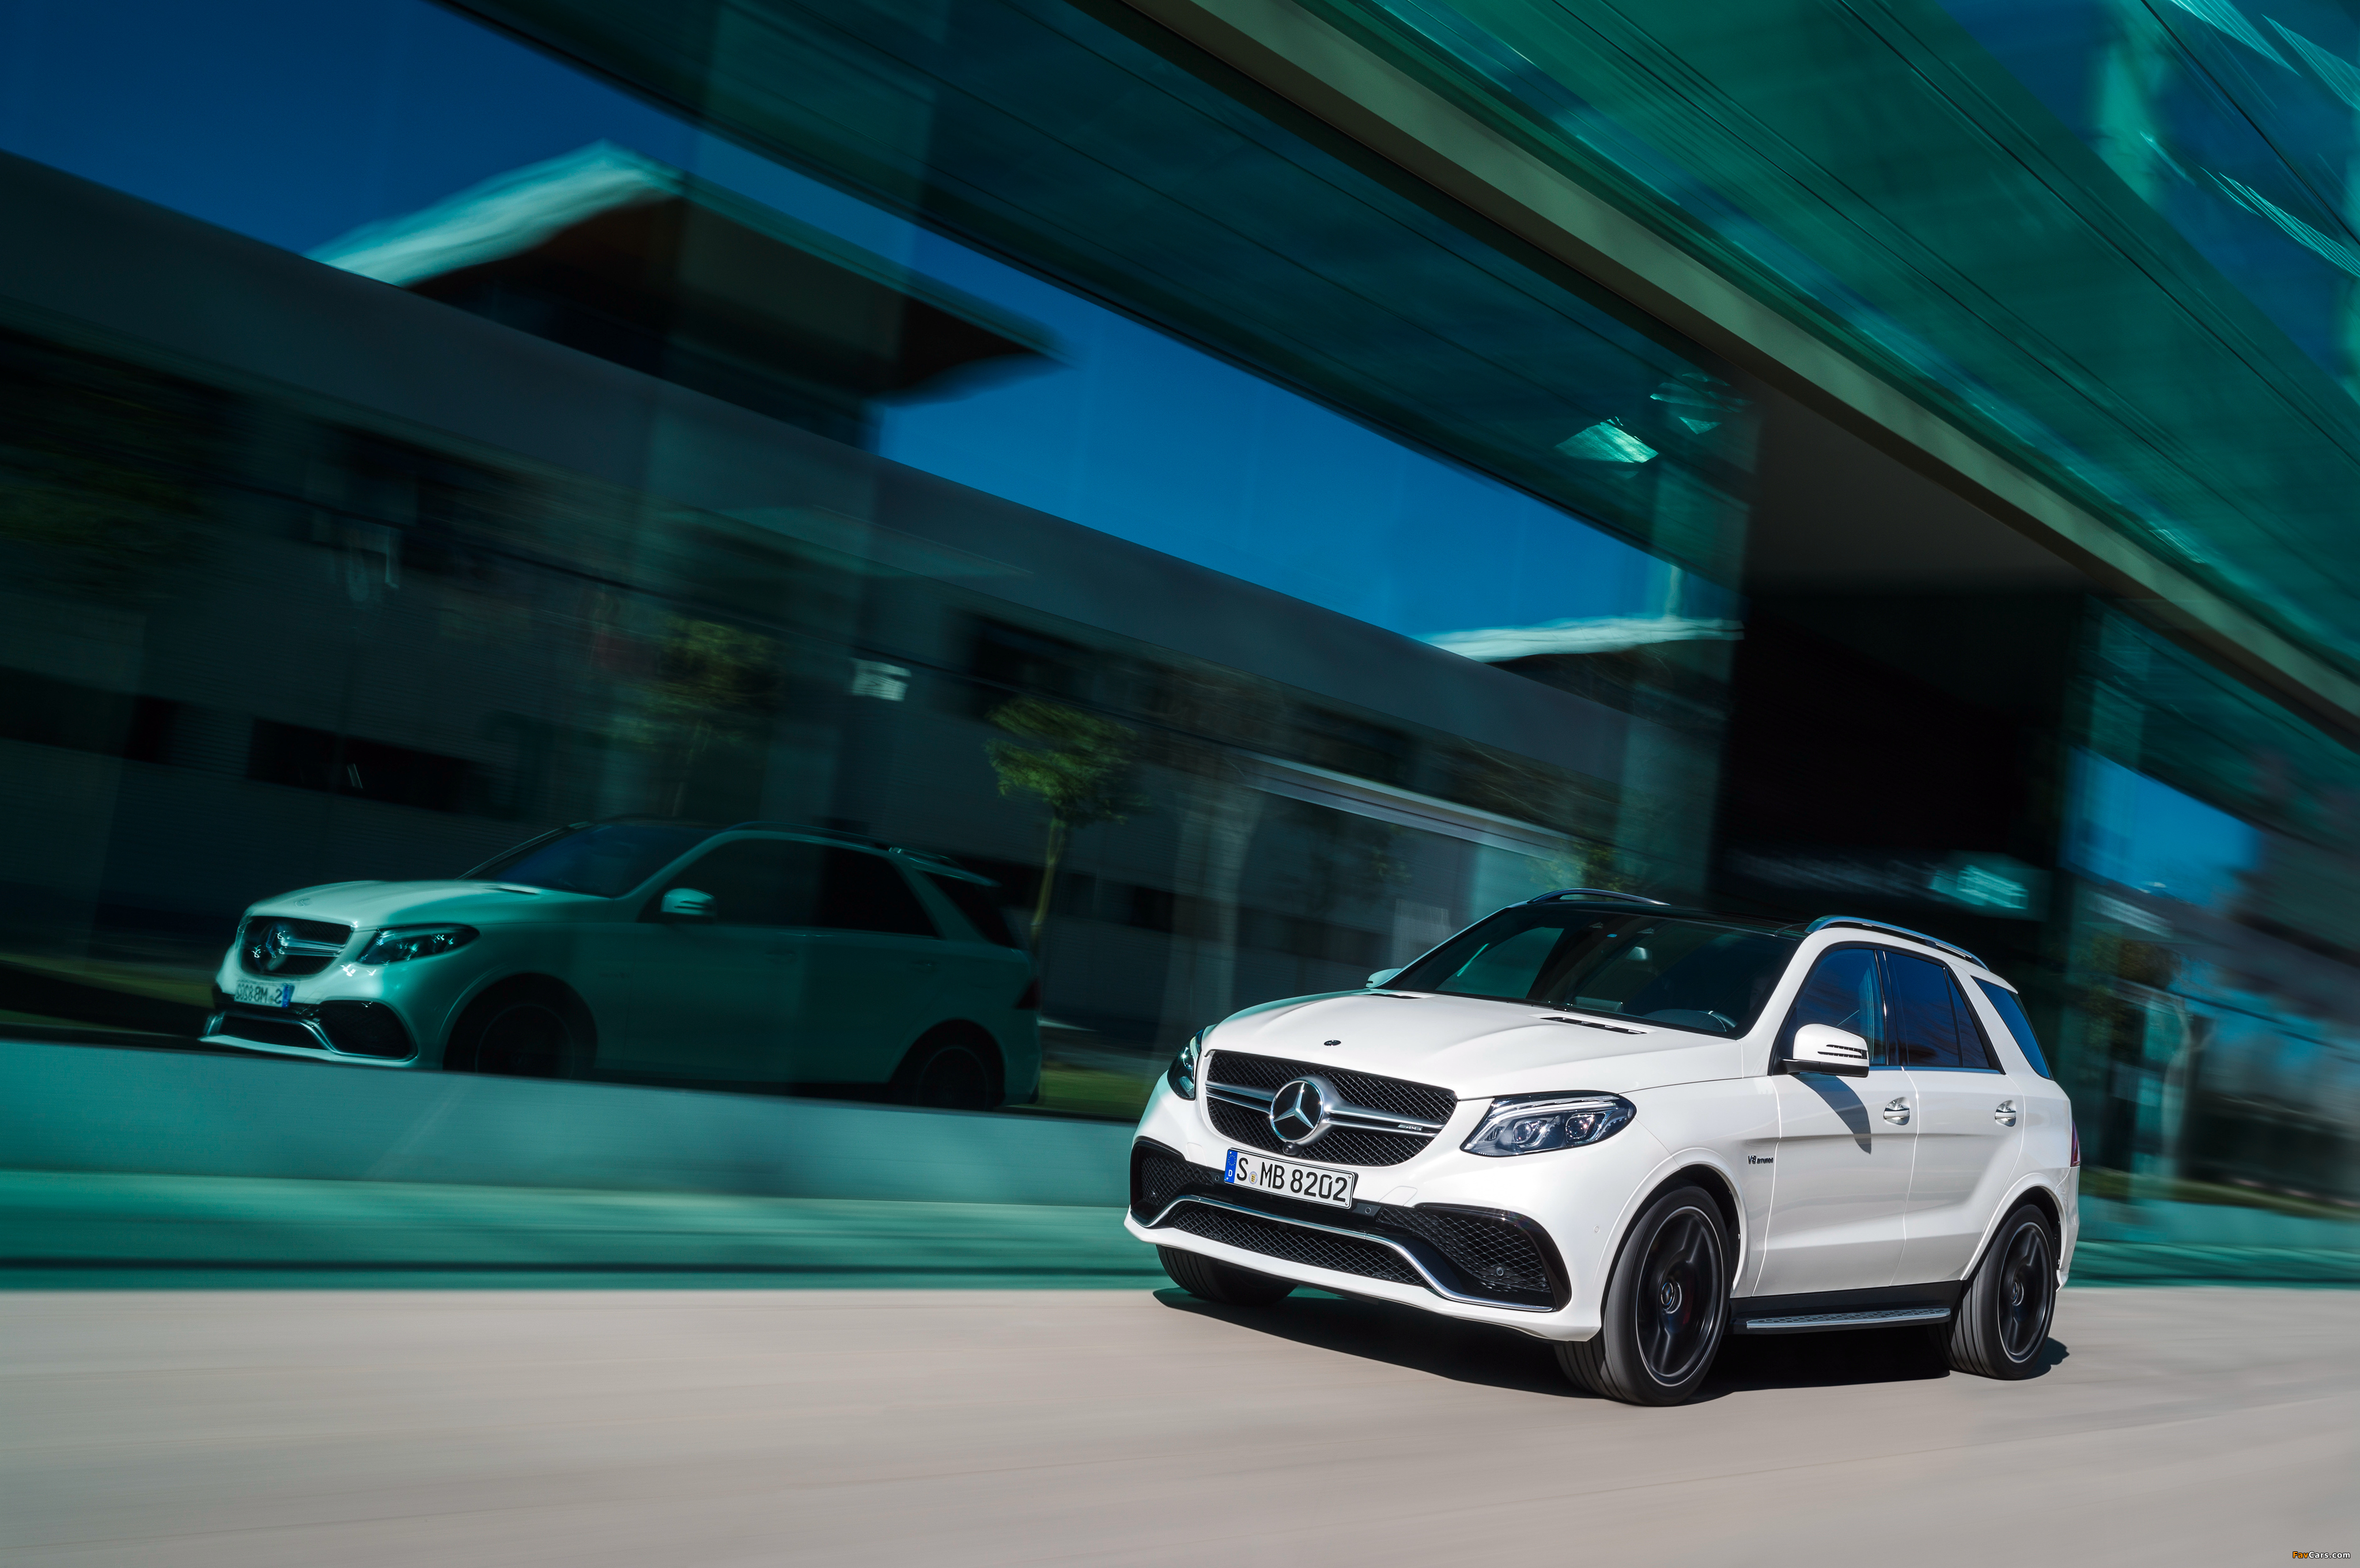 Mercedes-AMG GLE 63 S 4MATIC (W166) 2015 images (4096 x 2722)